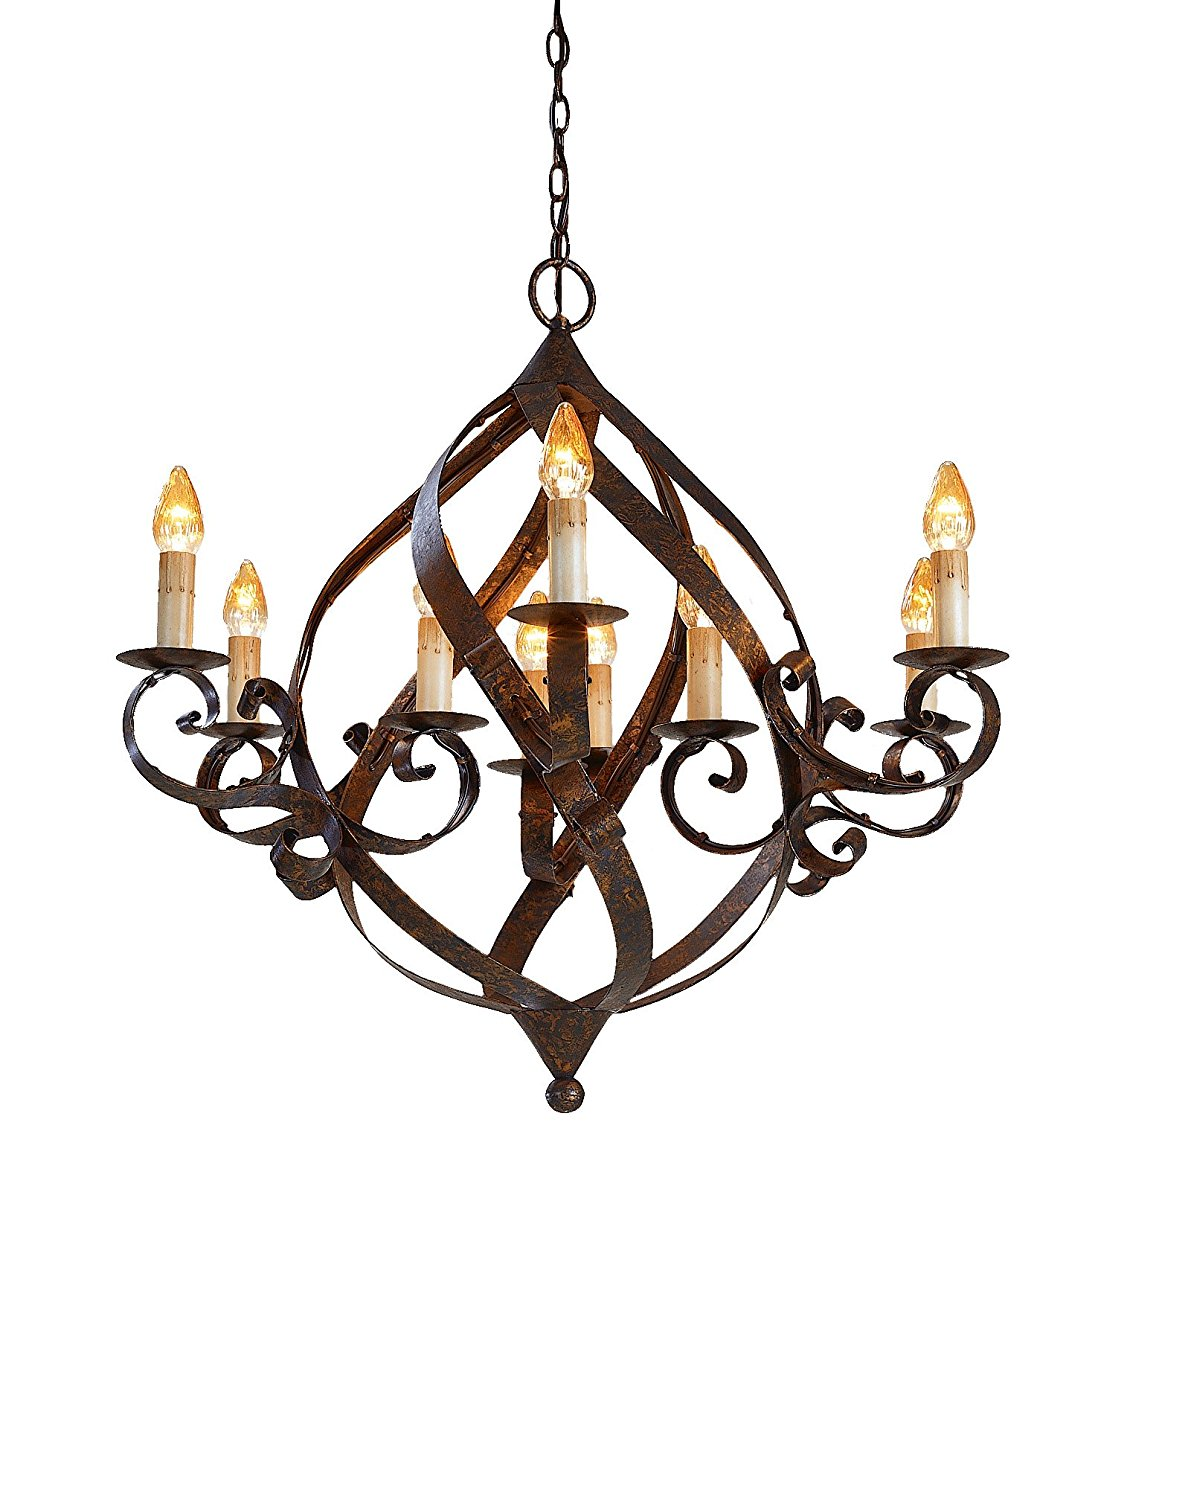 Currey and Company 9528 Gramercy 9-Light Chandelier, Mayfair Finish